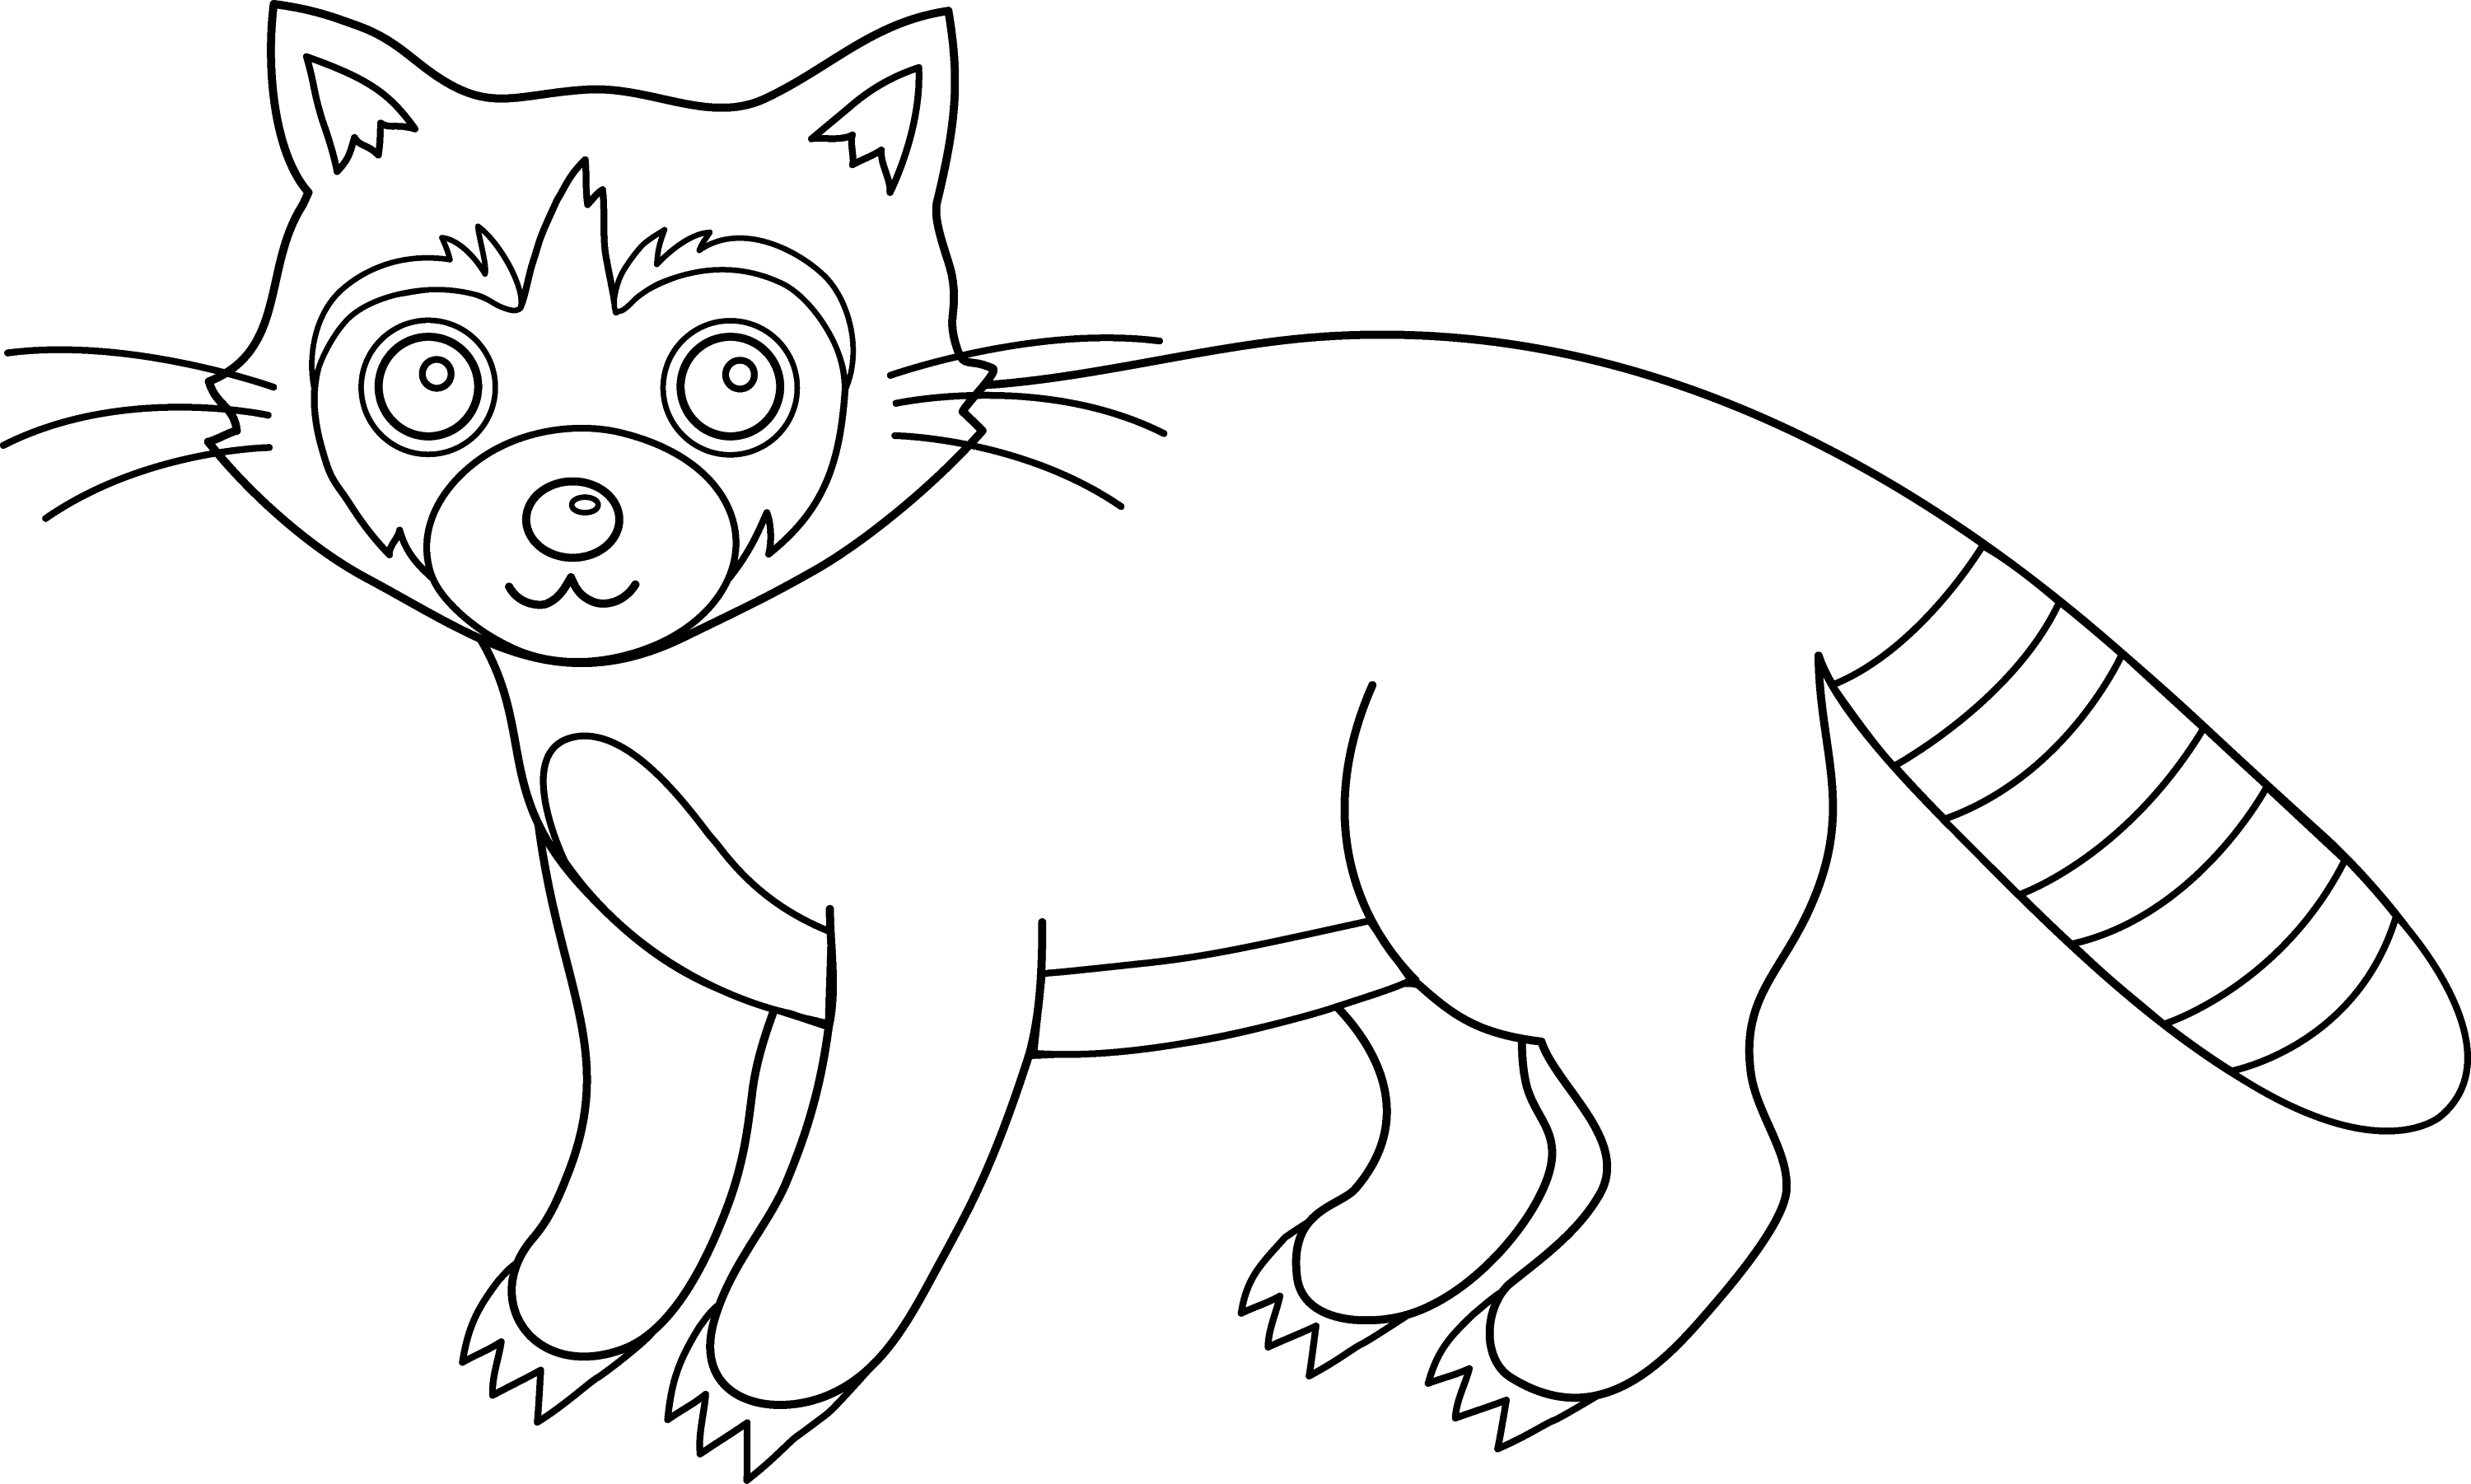 Line Drawings Of Woodland Animals : Forest animal clipart black and white